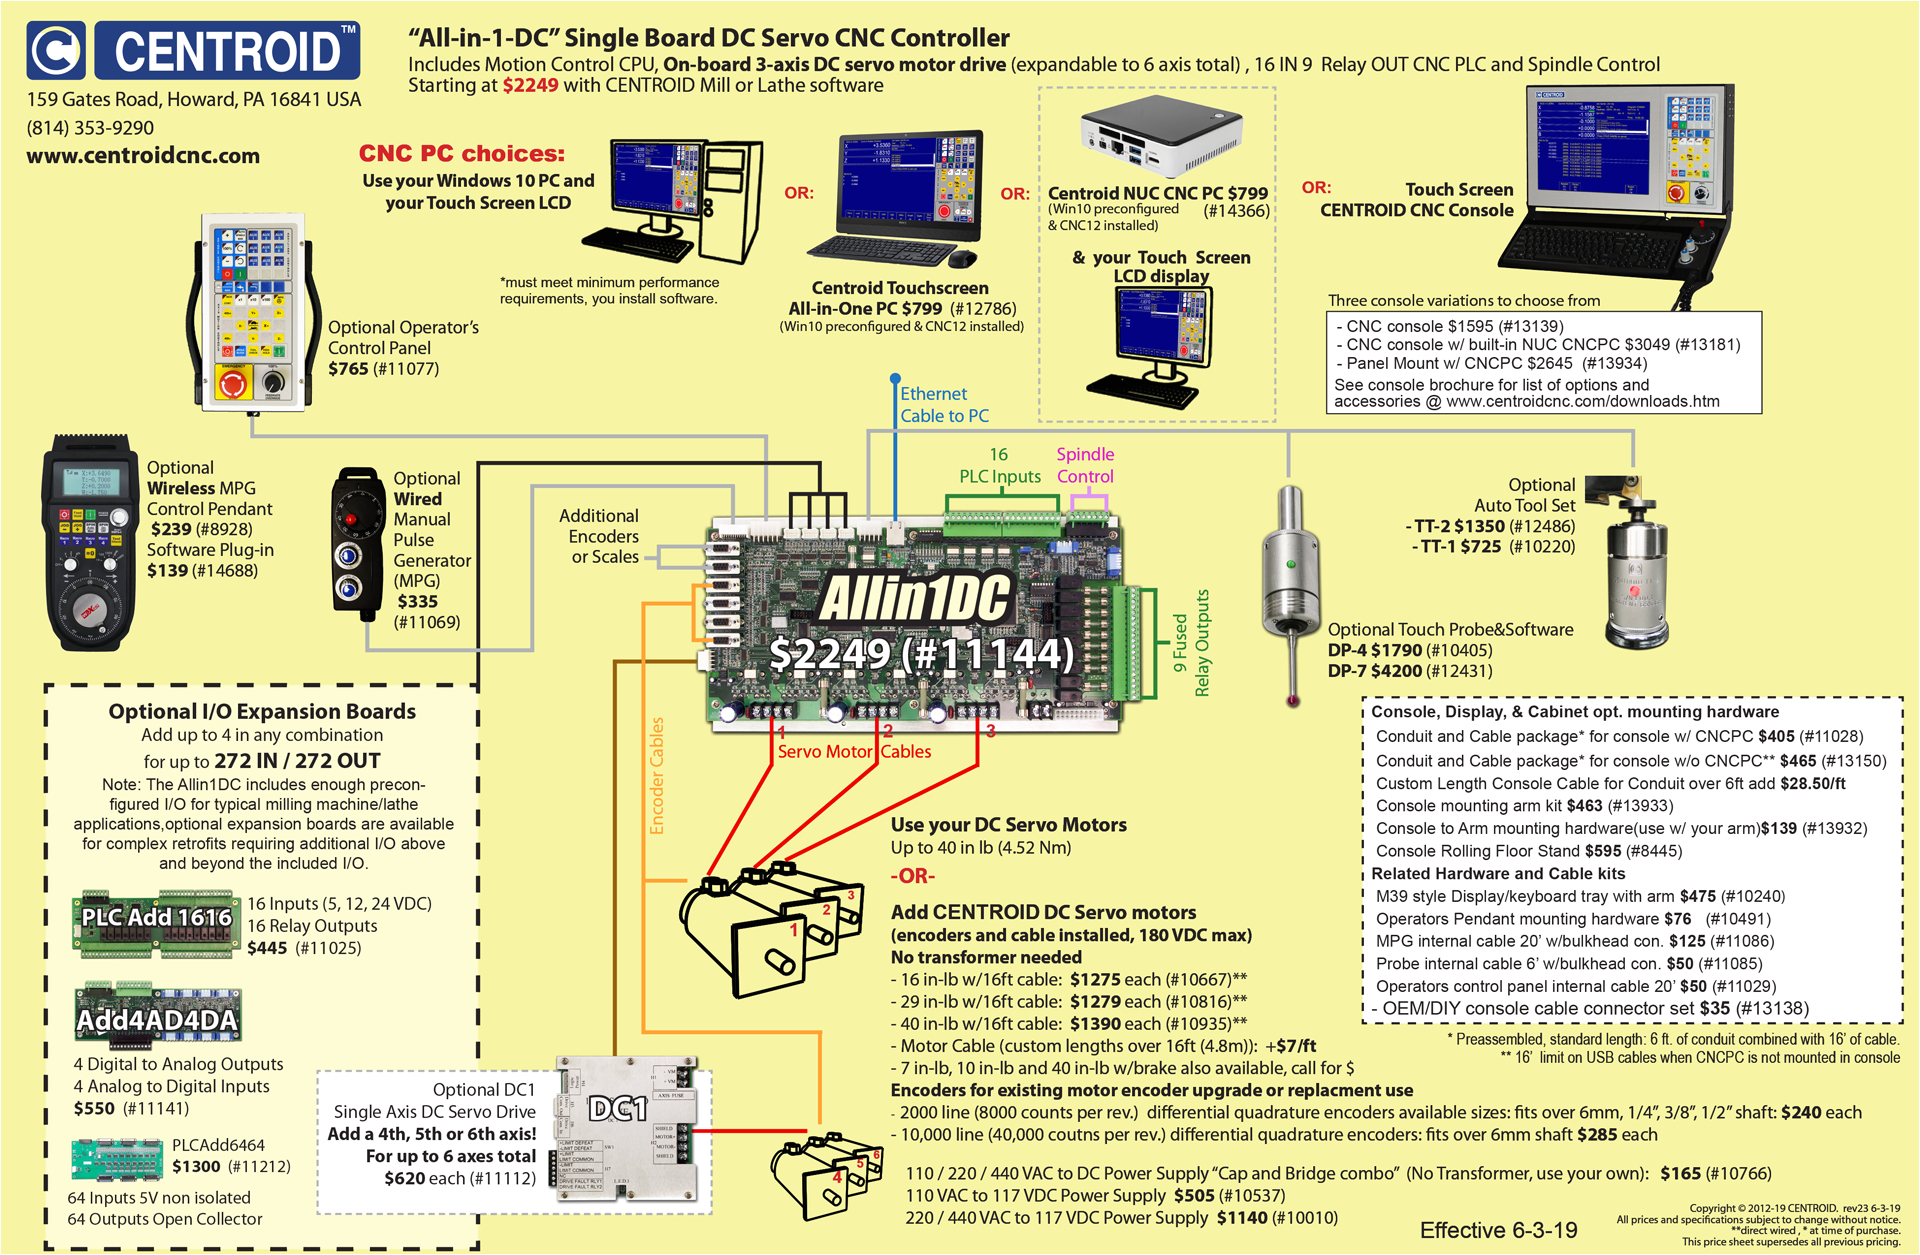 Heidenhain Encoder Wiring Diagram Centroid Allin1dc Cnc Controller for Milling Machines Lathes and